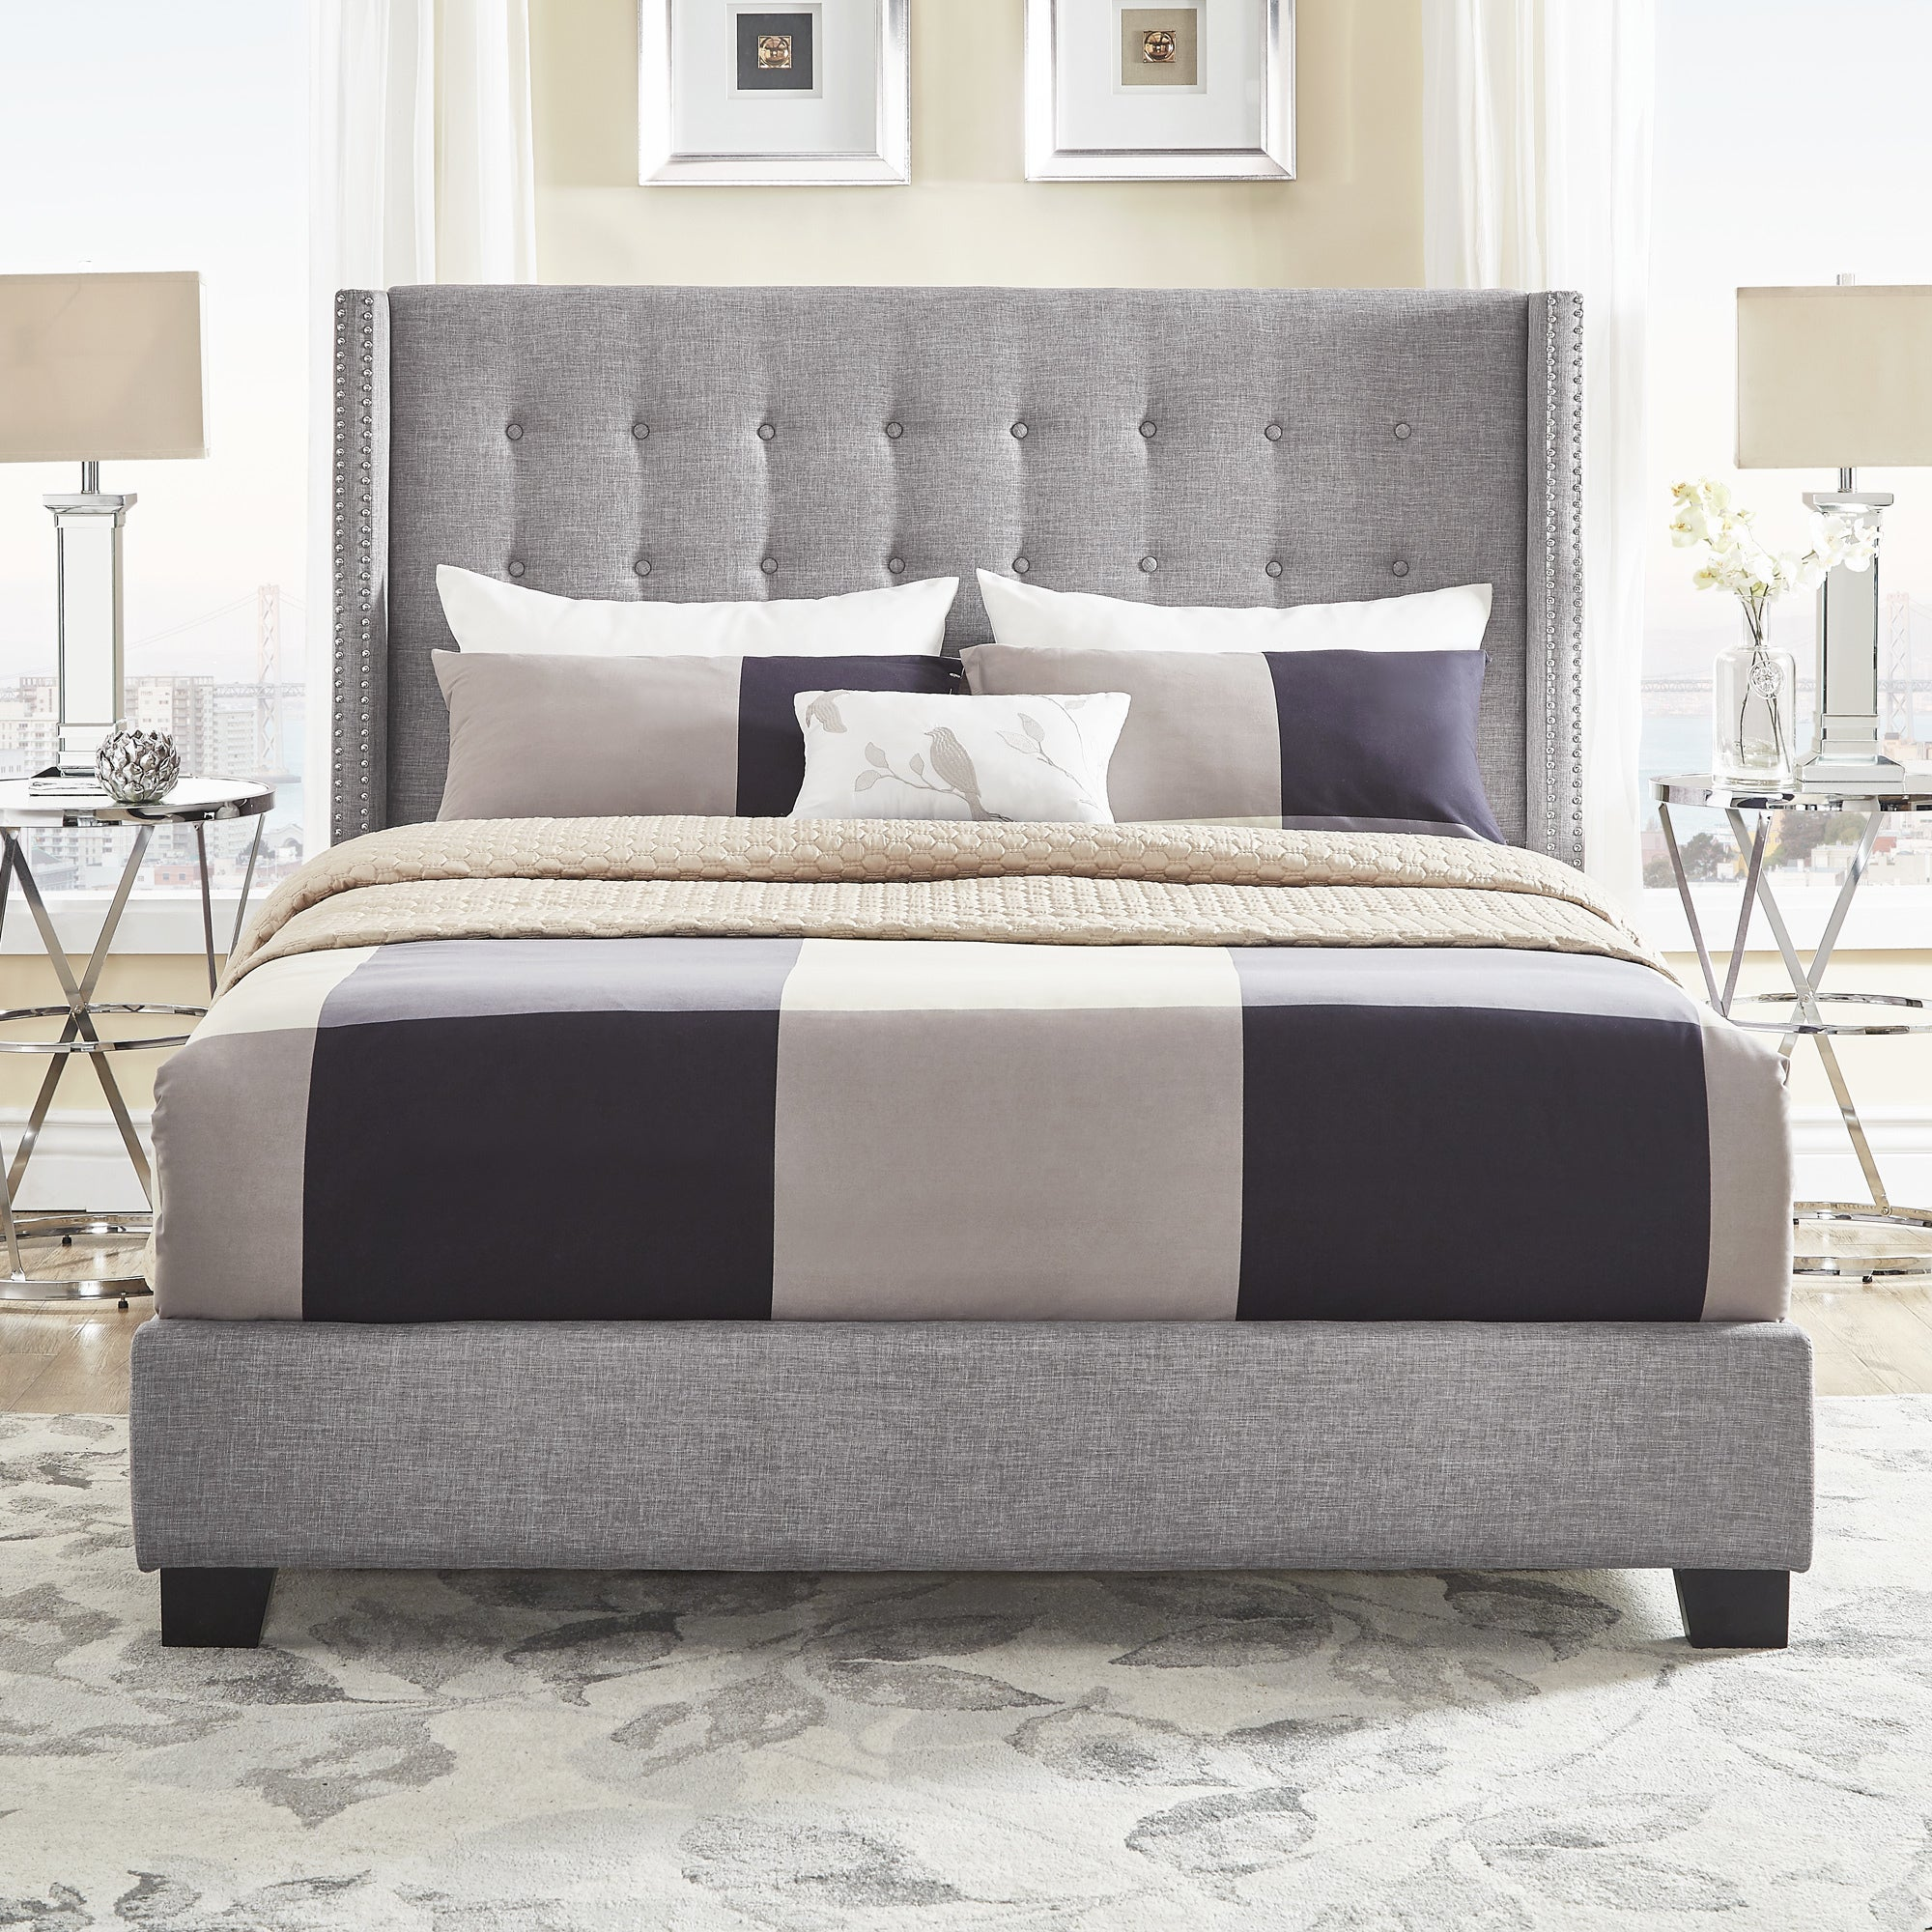 Melina Tufted Grey Linen Wingback Bed by iNSPIRE Q BoldToday: $334.49